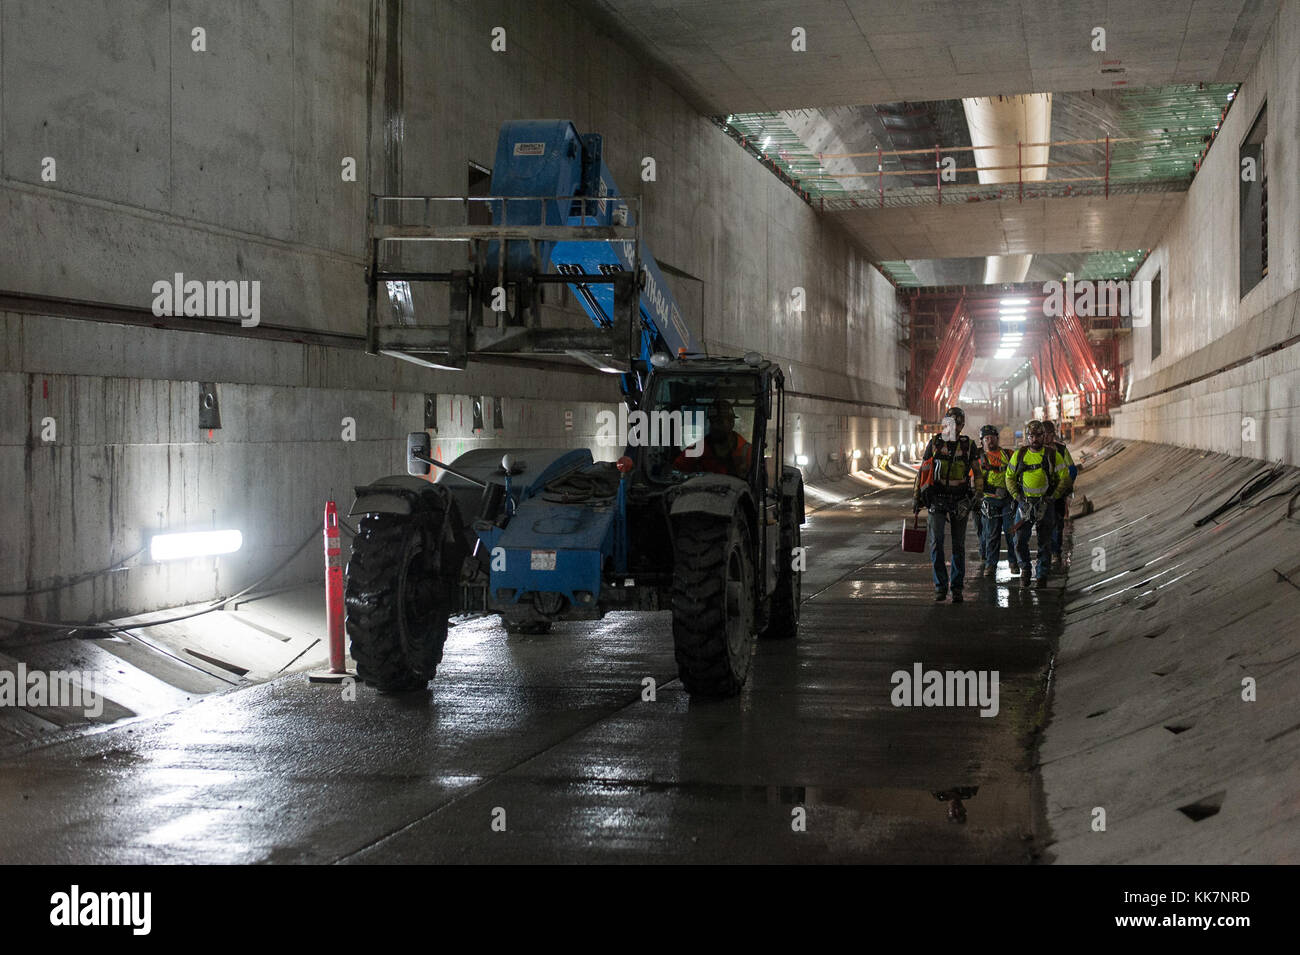 Pioneer Program Stockfotos & Pioneer Program Bilder - Alamy